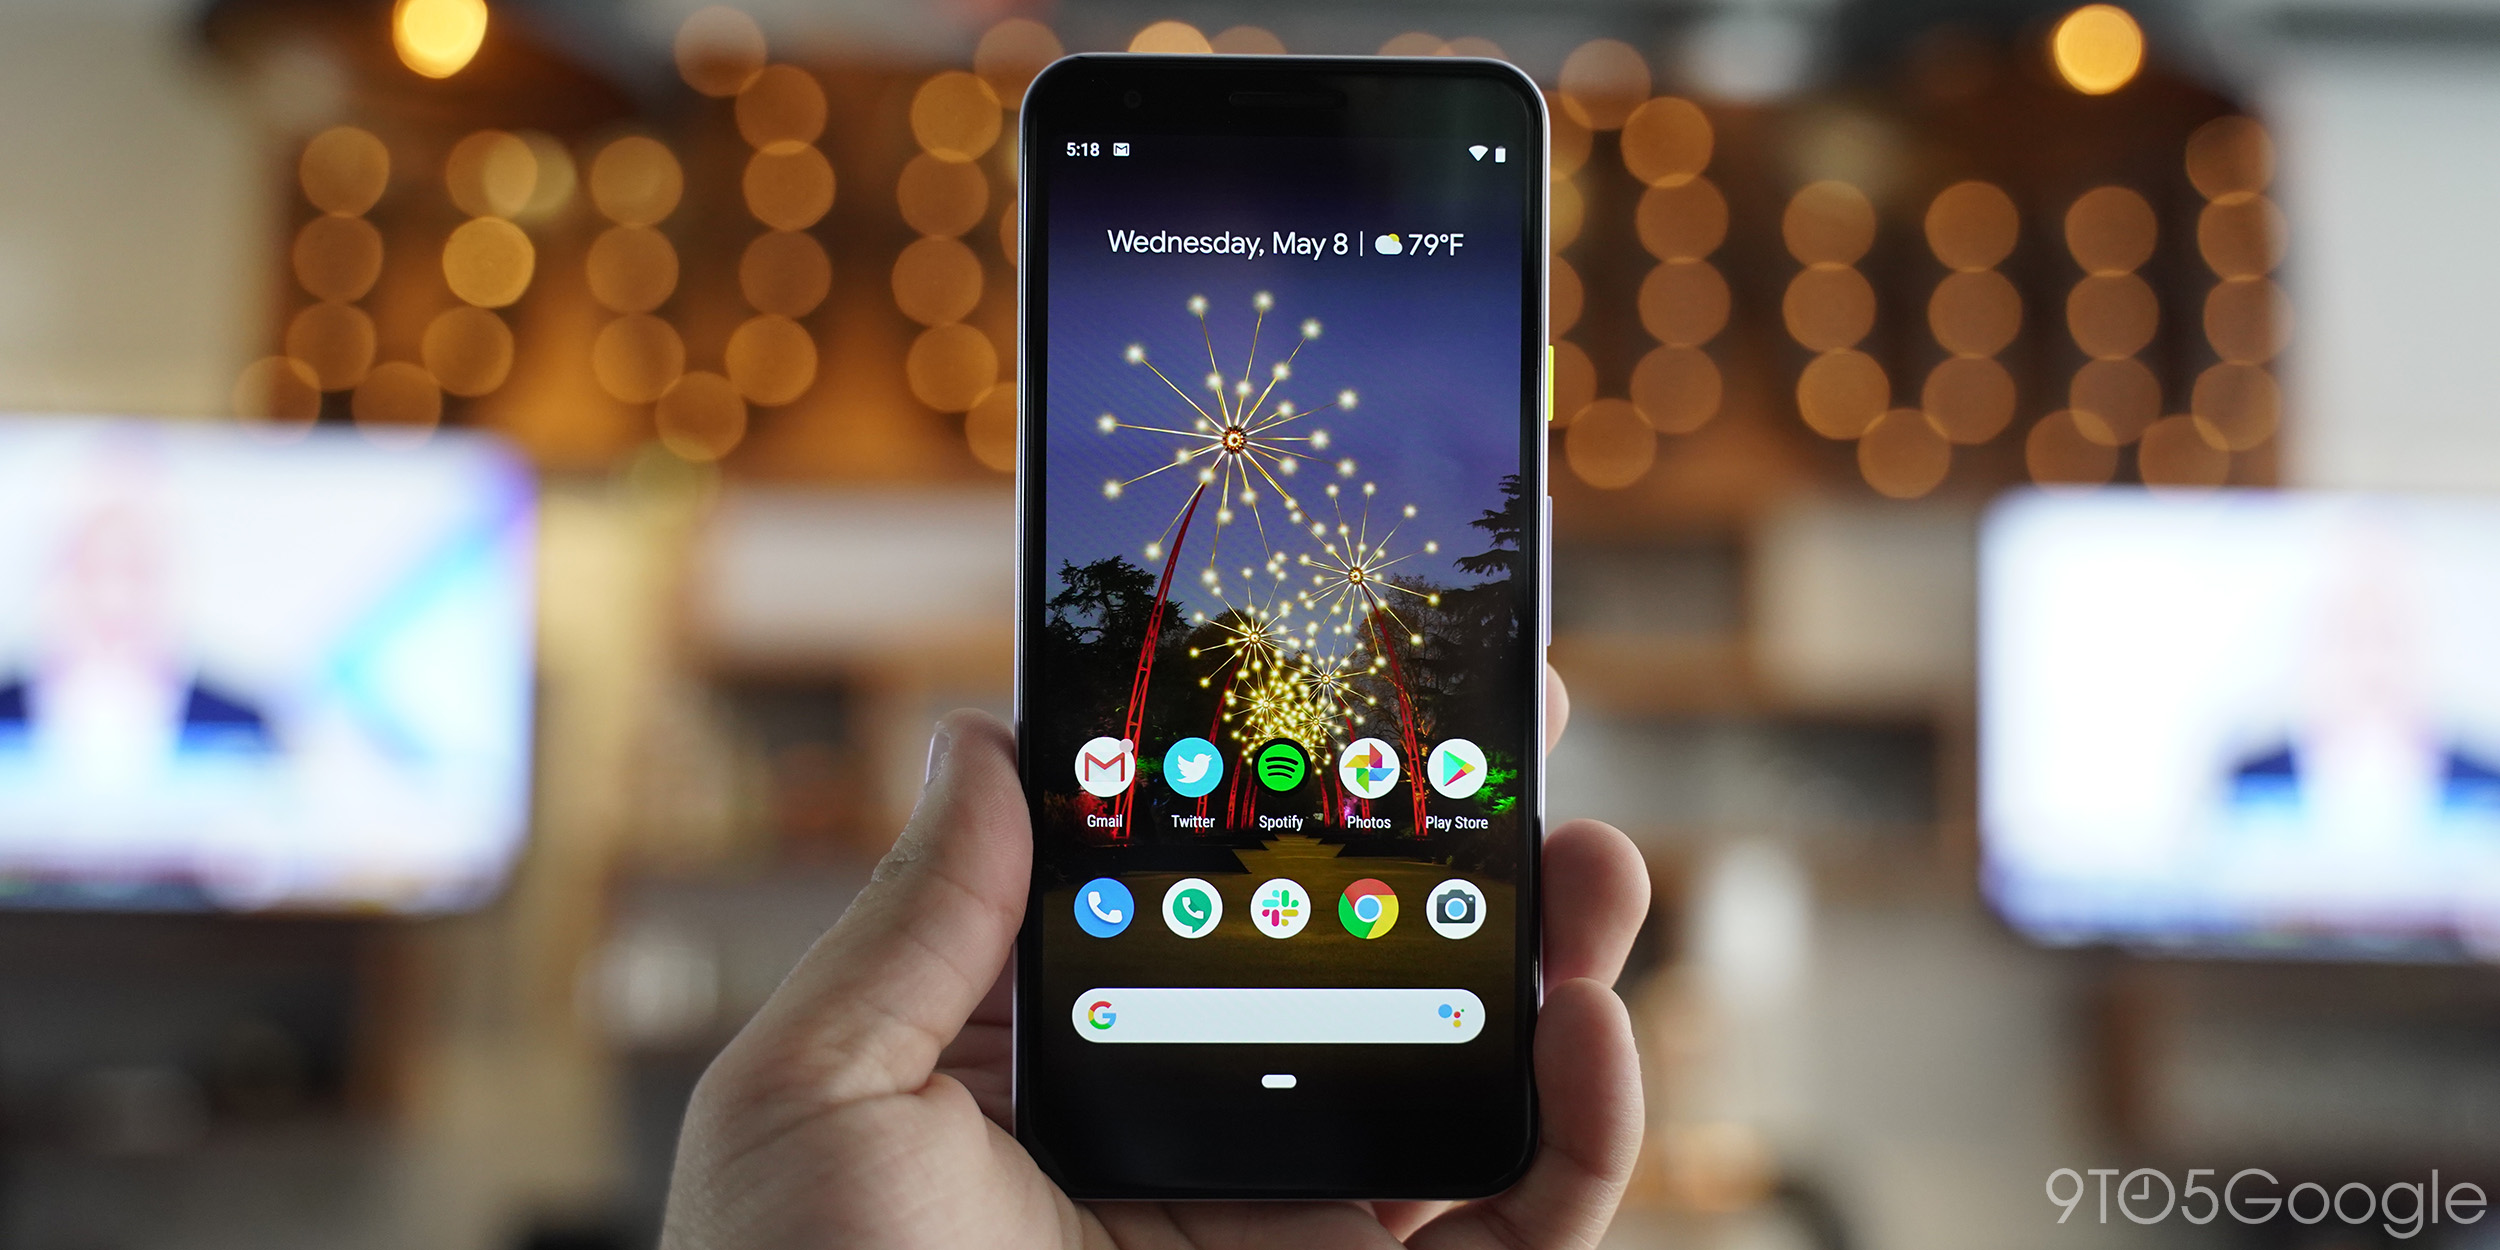 Google Pixel 3a Deals Start At 150 As New All Time Lows Arrive More From 90 9to5toys